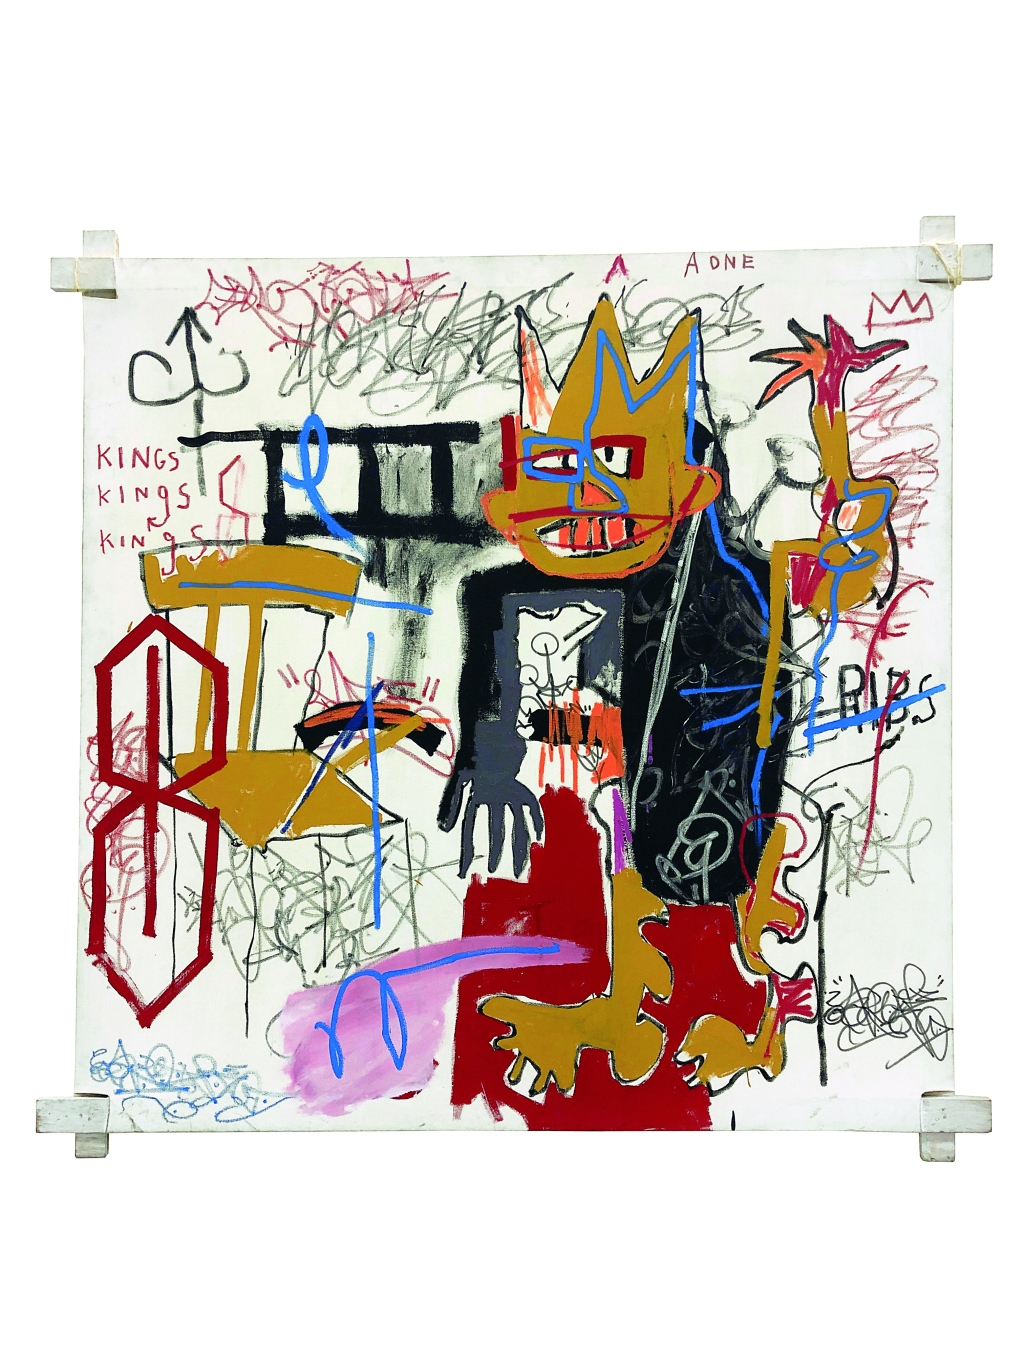 Phillips to Sell $12.5 M. Basquiat Painting at New Southampton Location